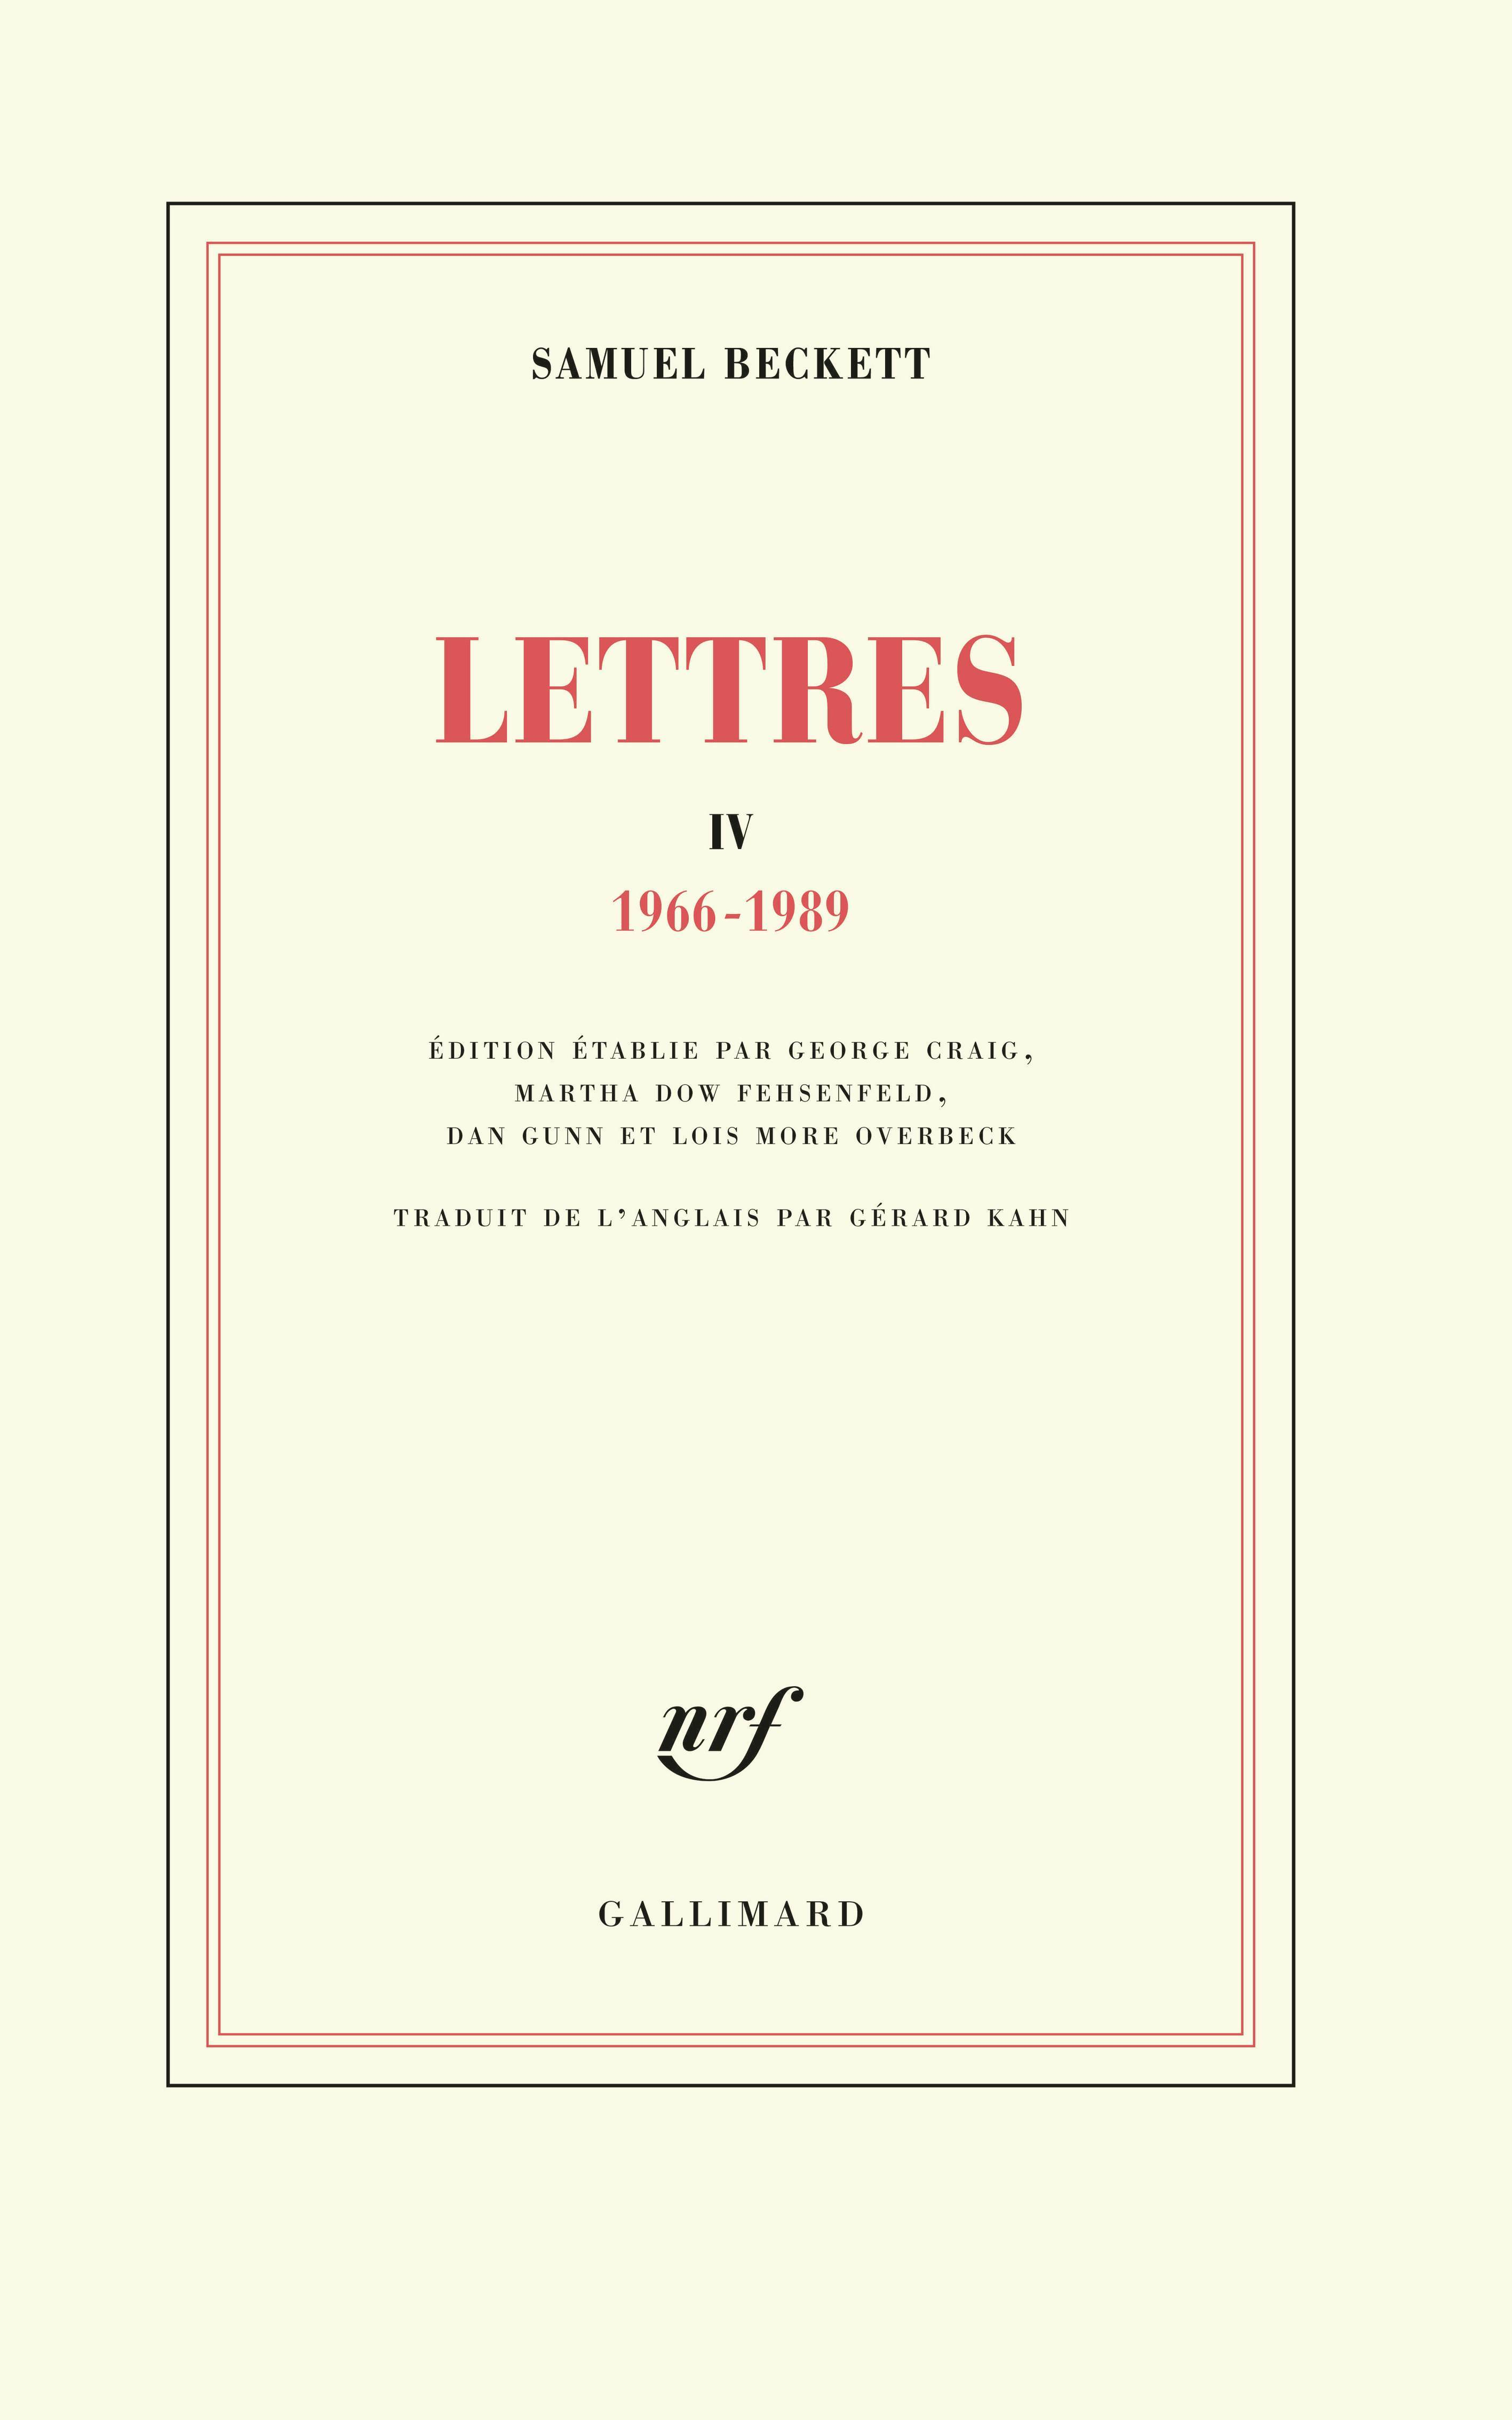 LETTRES IV